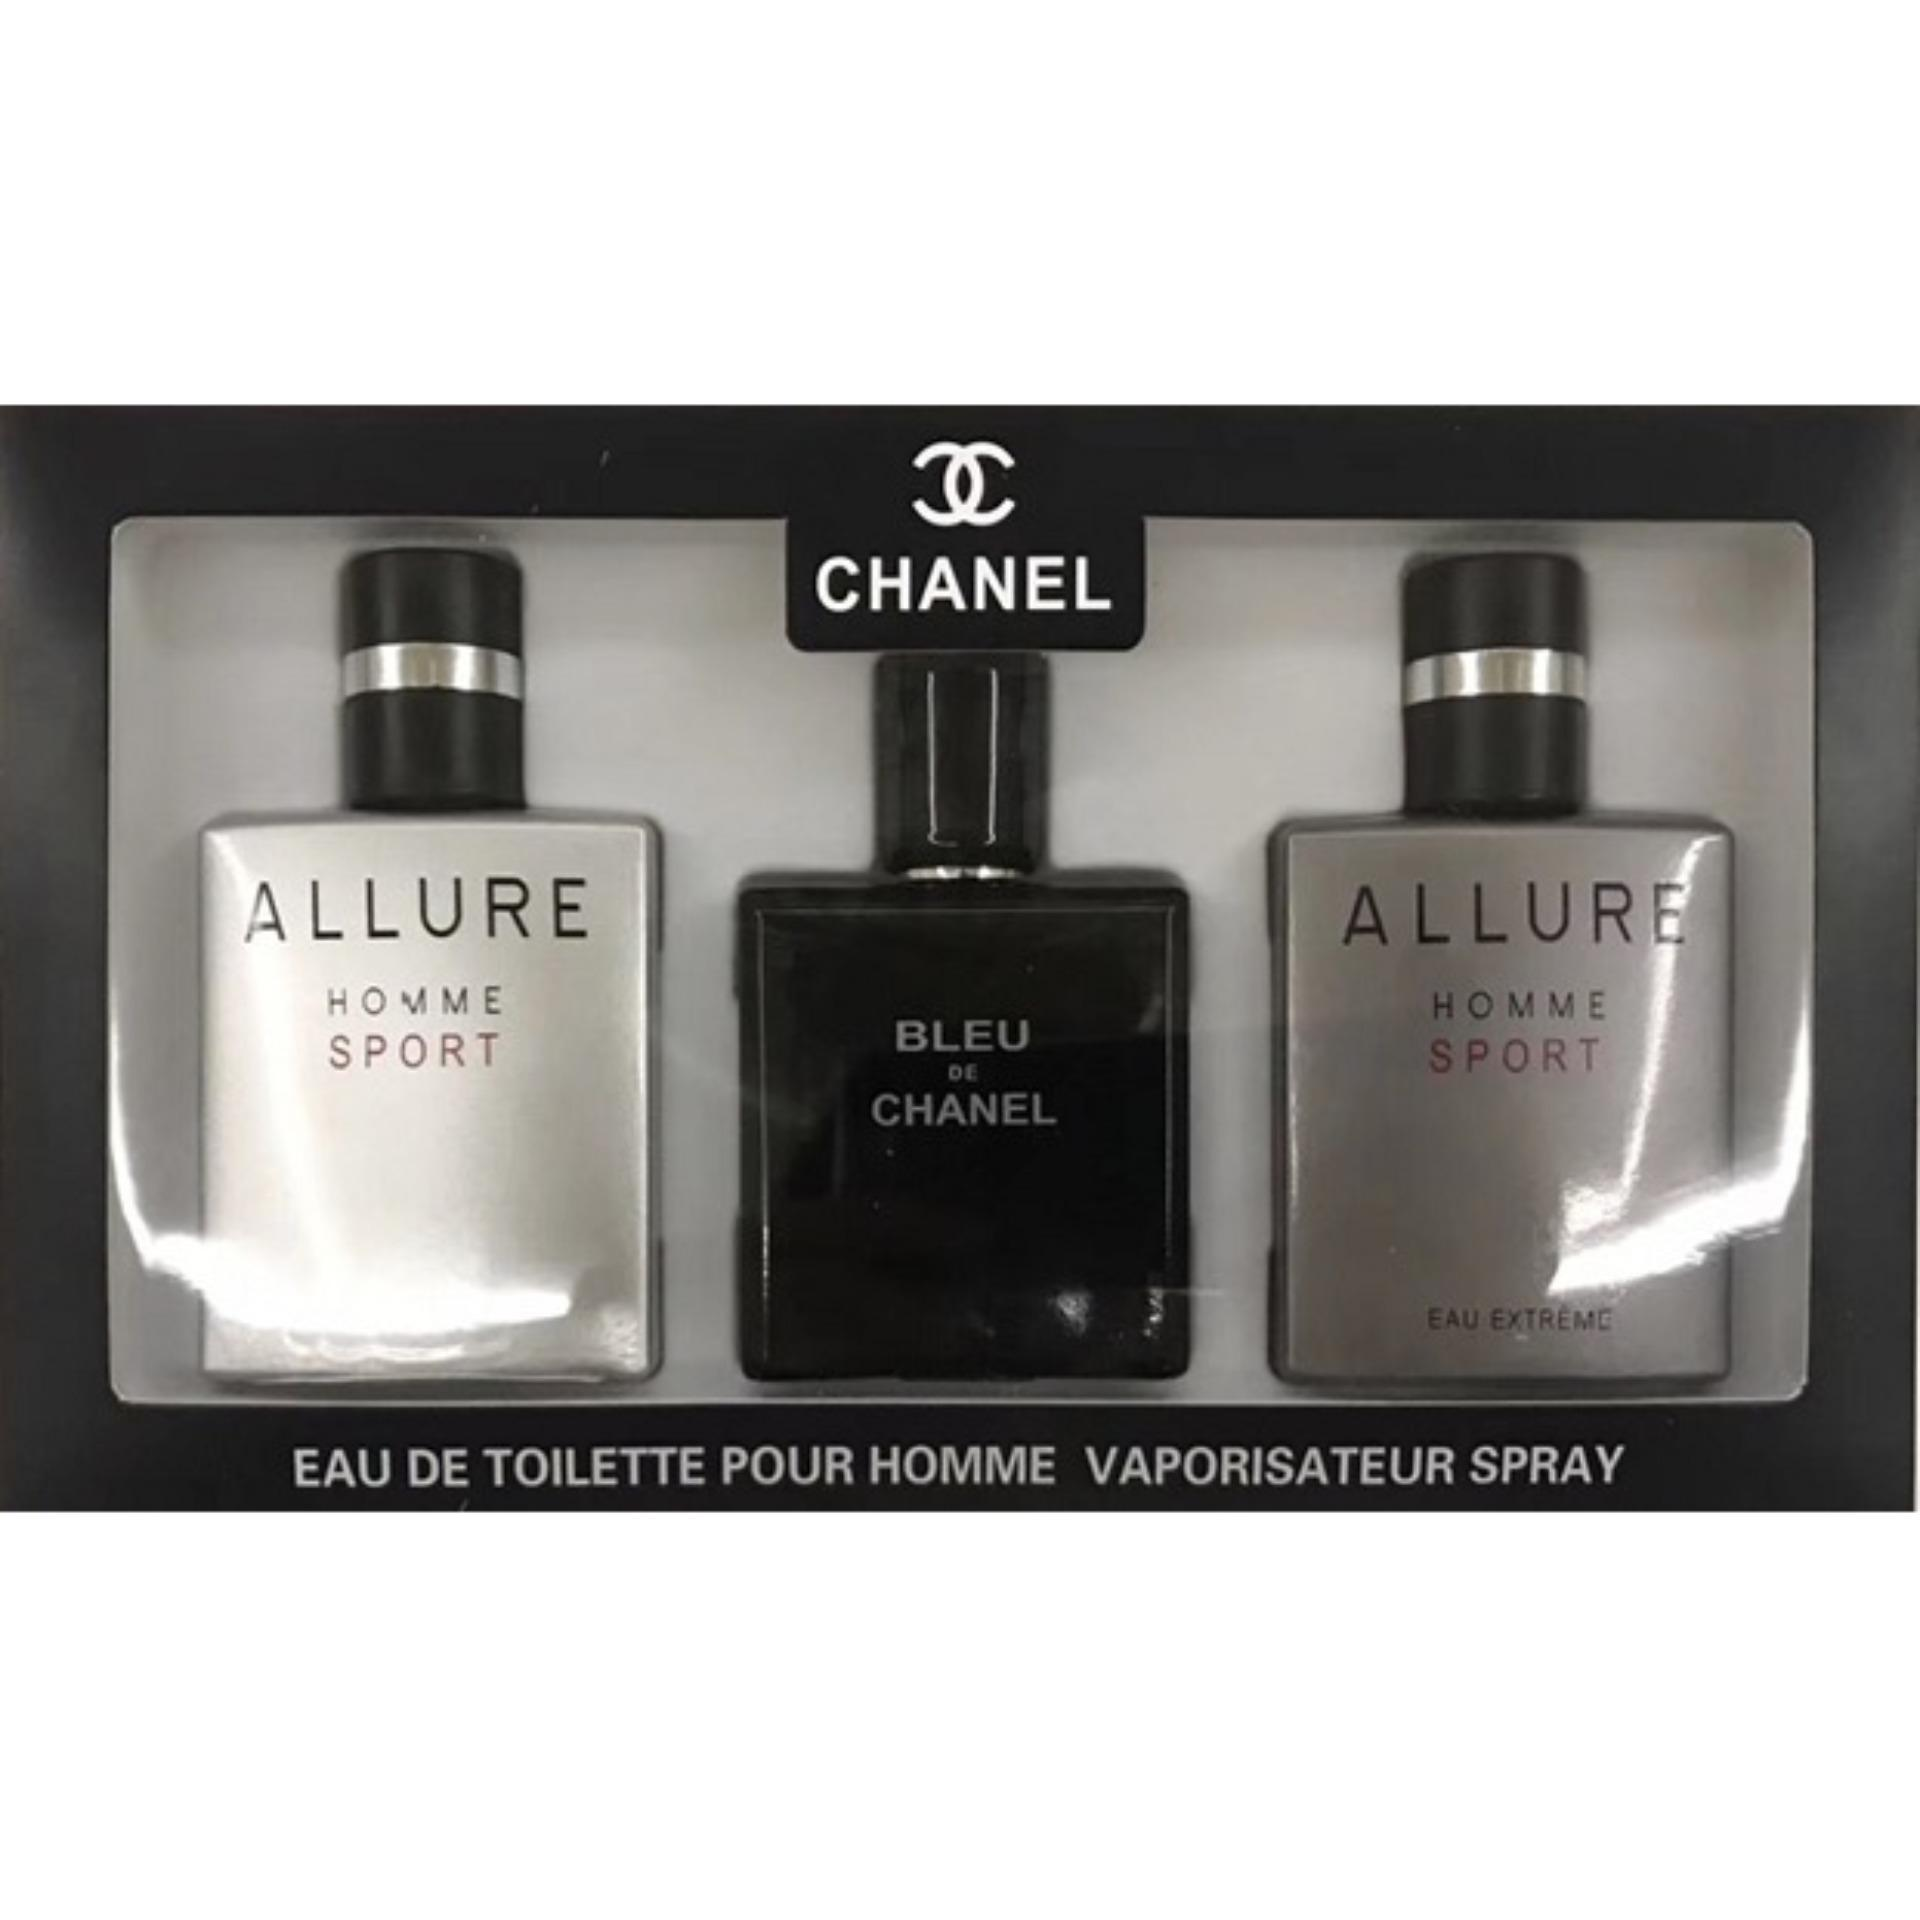 Chanel 3 in 1 Edt Pour Homme Vaporisateur Spray Set for Men with 25ml